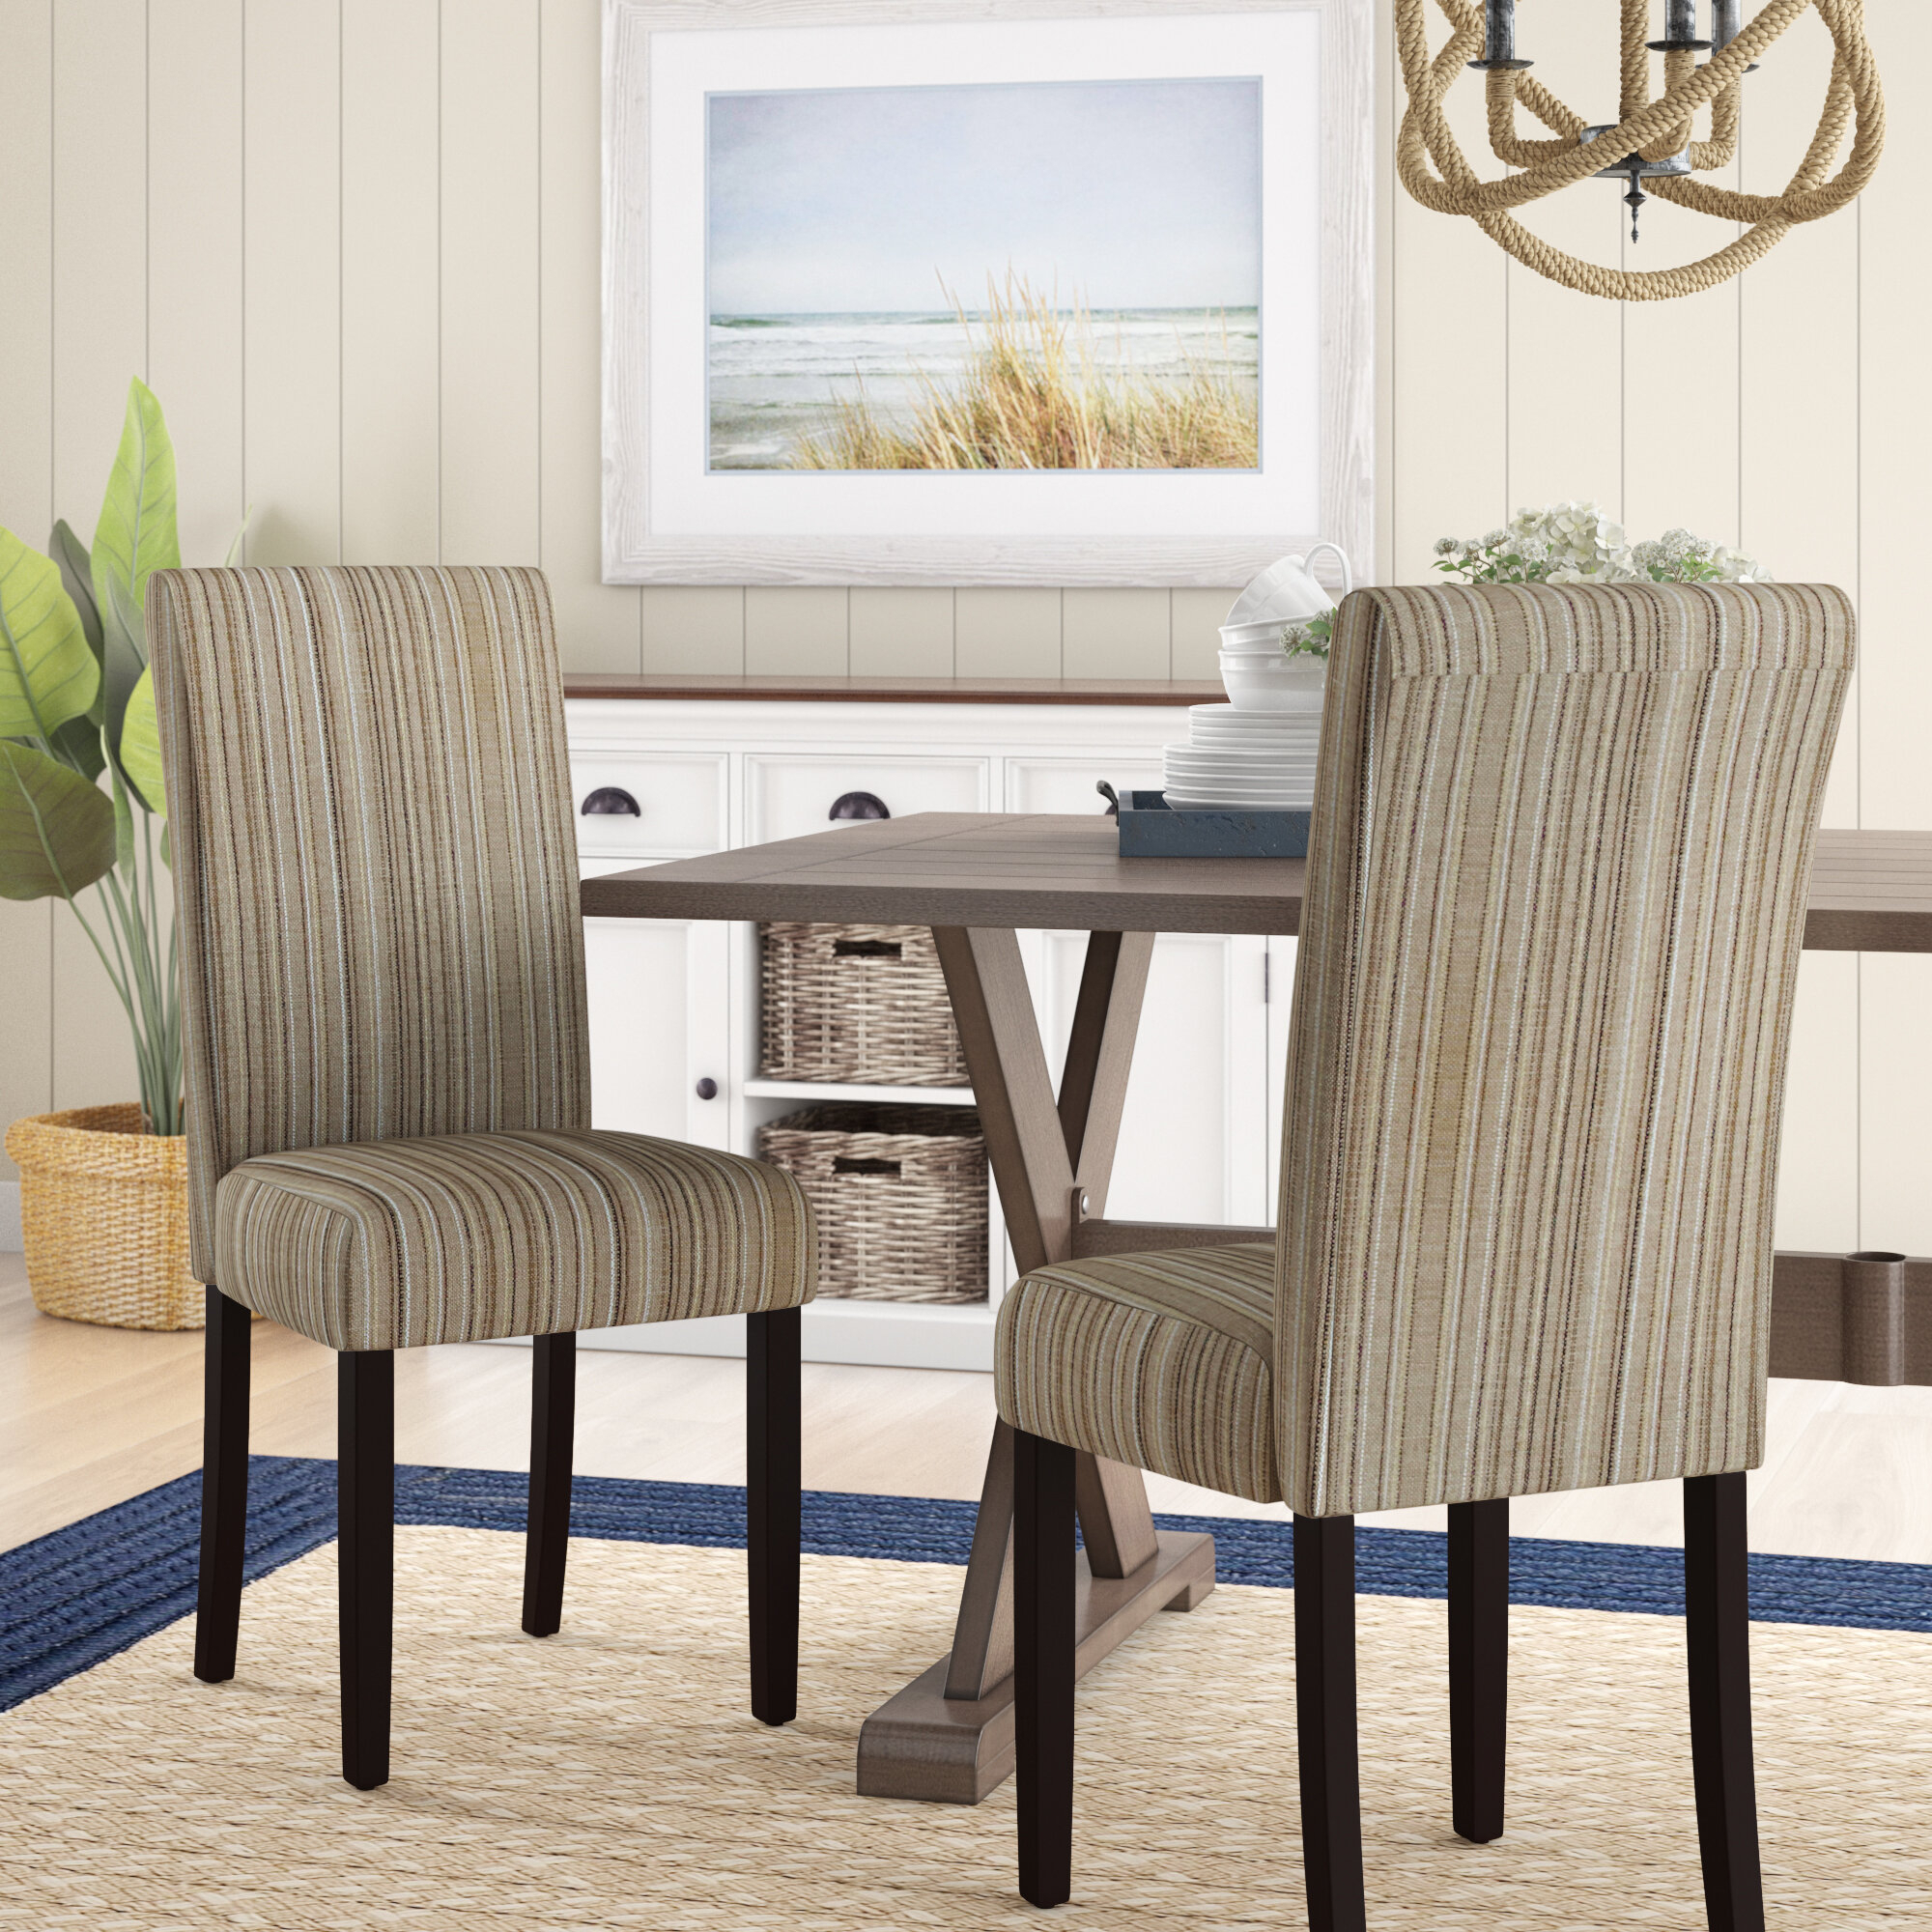 Coastal Upholstered Kitchen & Dining Chairs You'Ll Love In Within Bob Stripe Upholstered Dining Chairs (Set Of 2) (View 4 of 15)